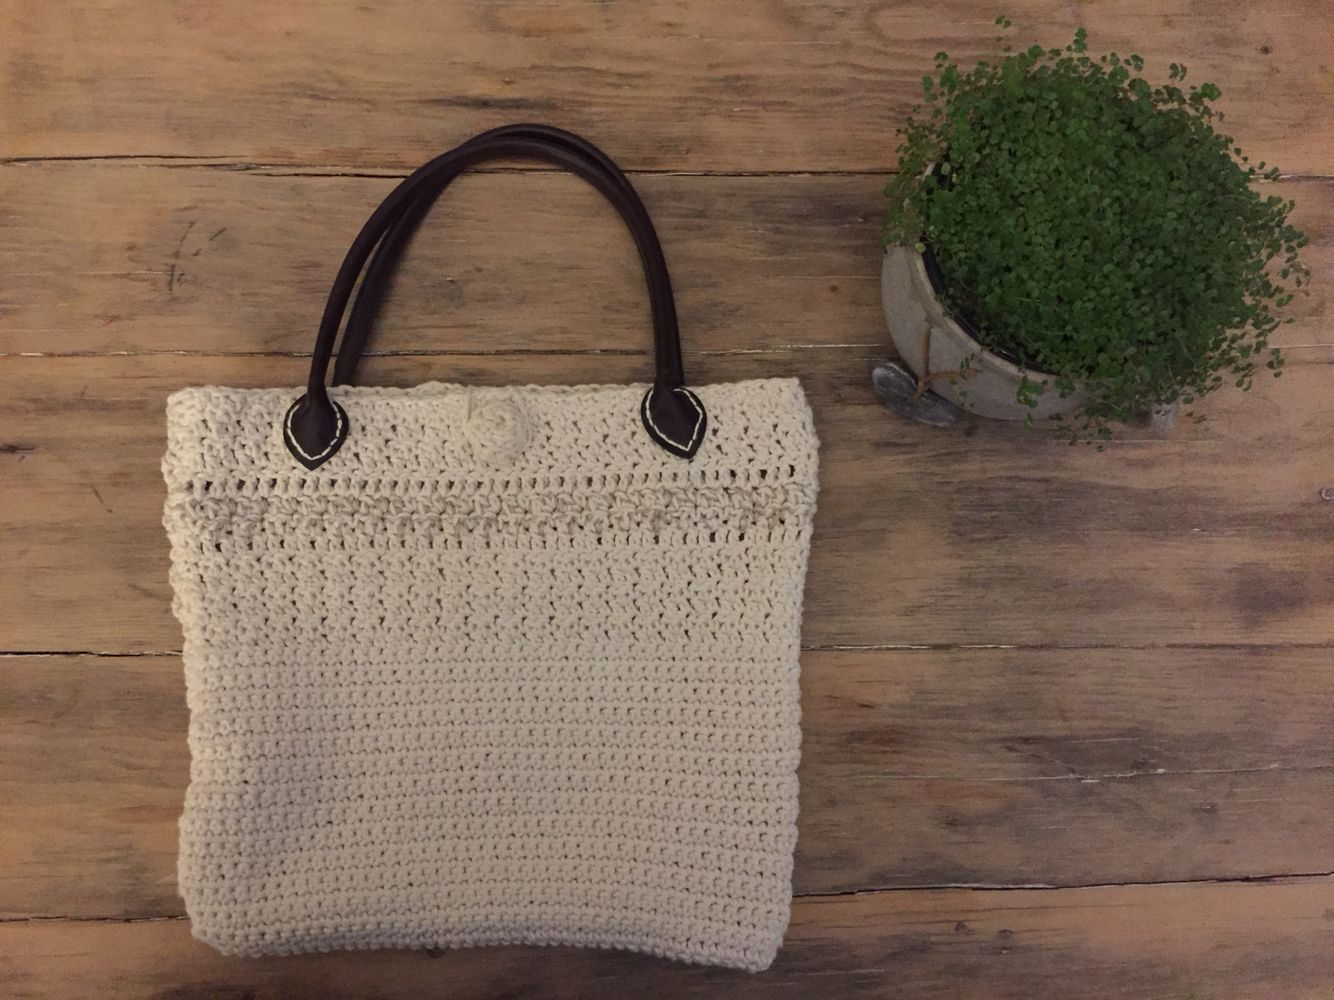 Raw cotton crochet bag - made by me